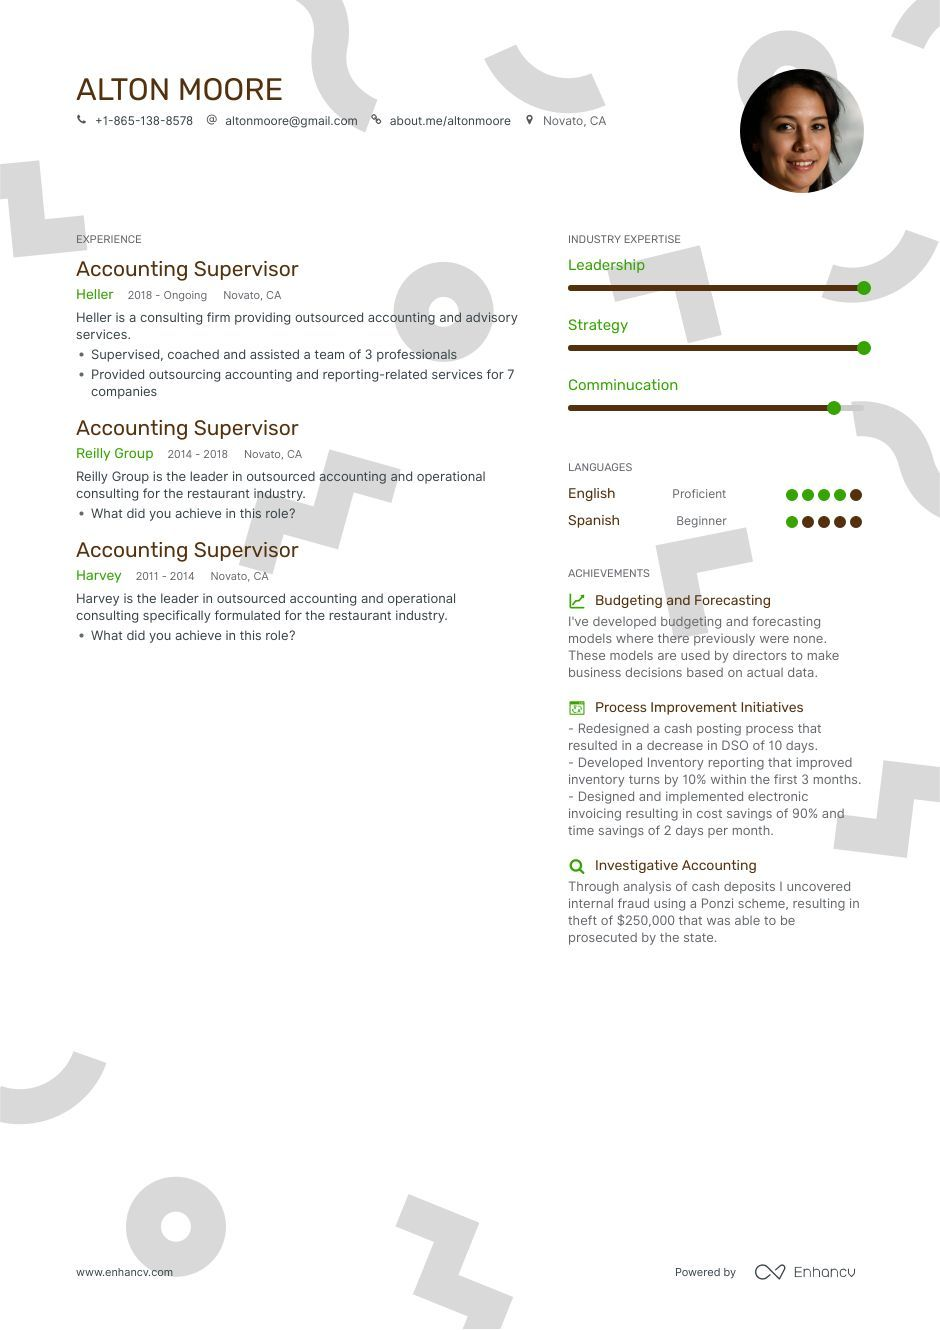 Accounting supervisor resume example and guide for 2019